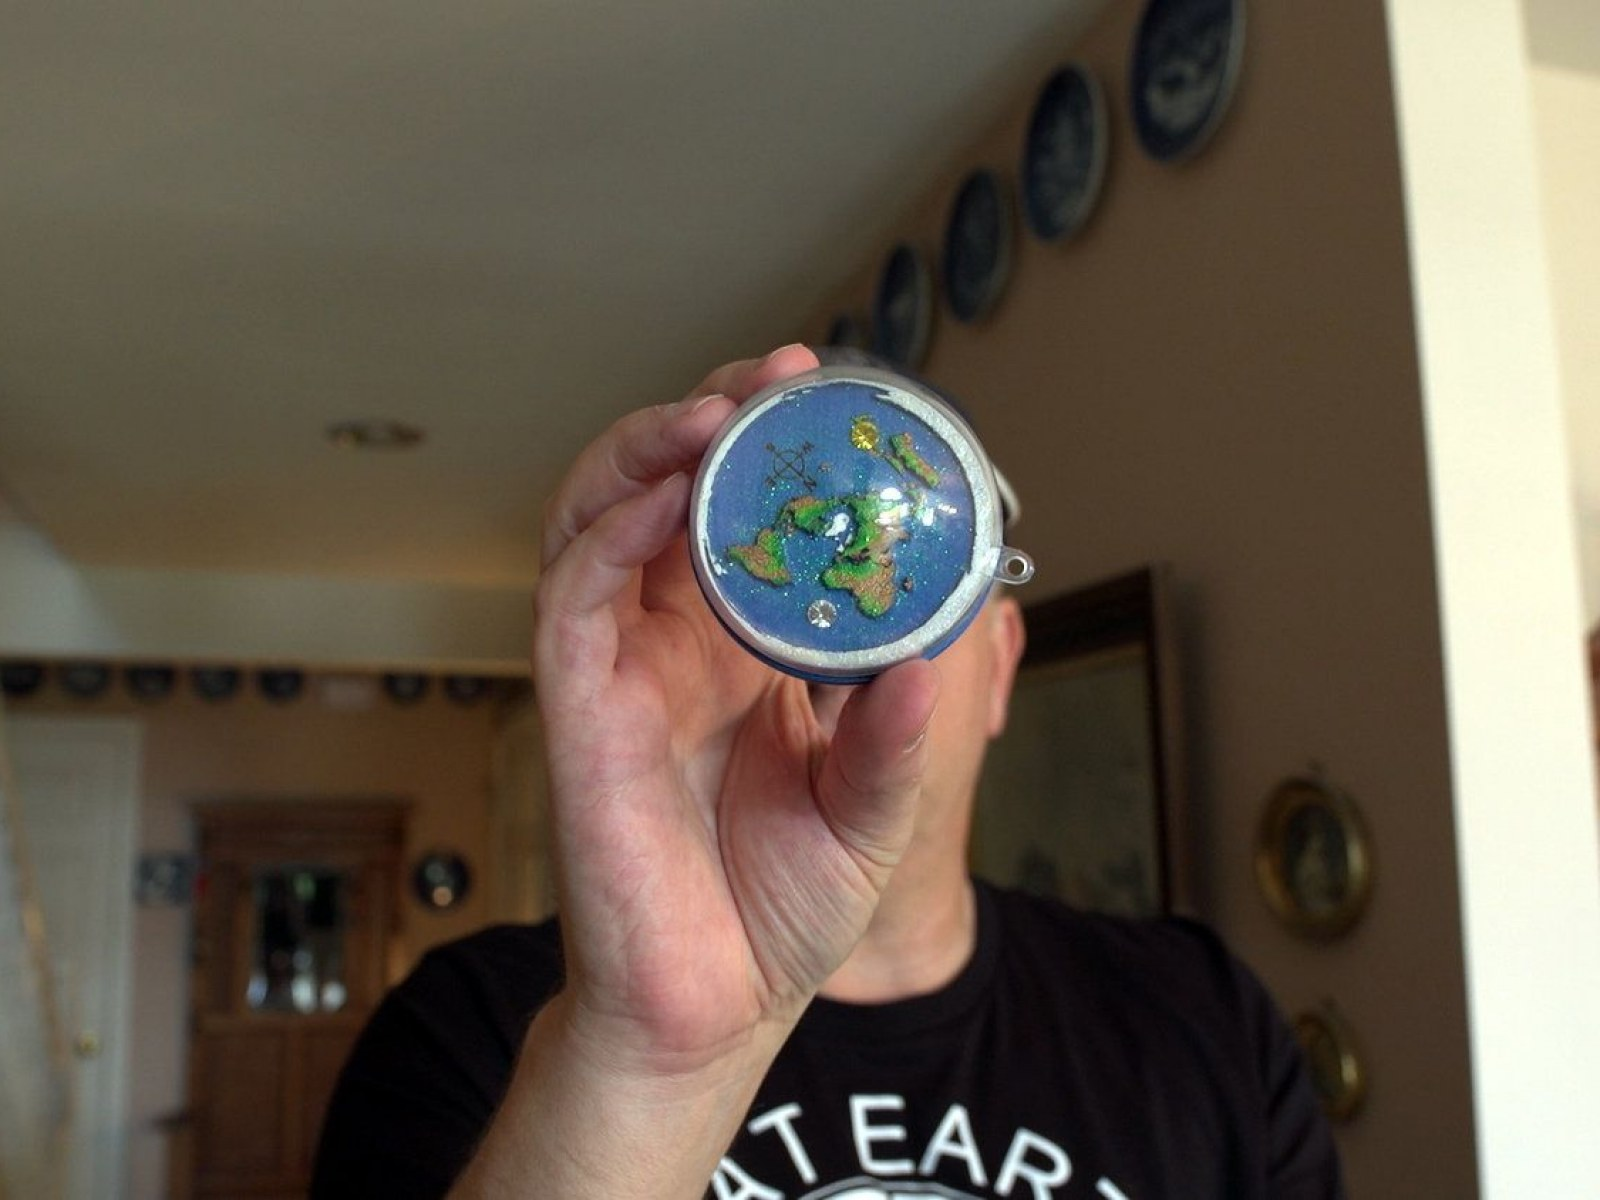 Behind the Curve' Ending: Flat Earthers Disprove Themselves With Own